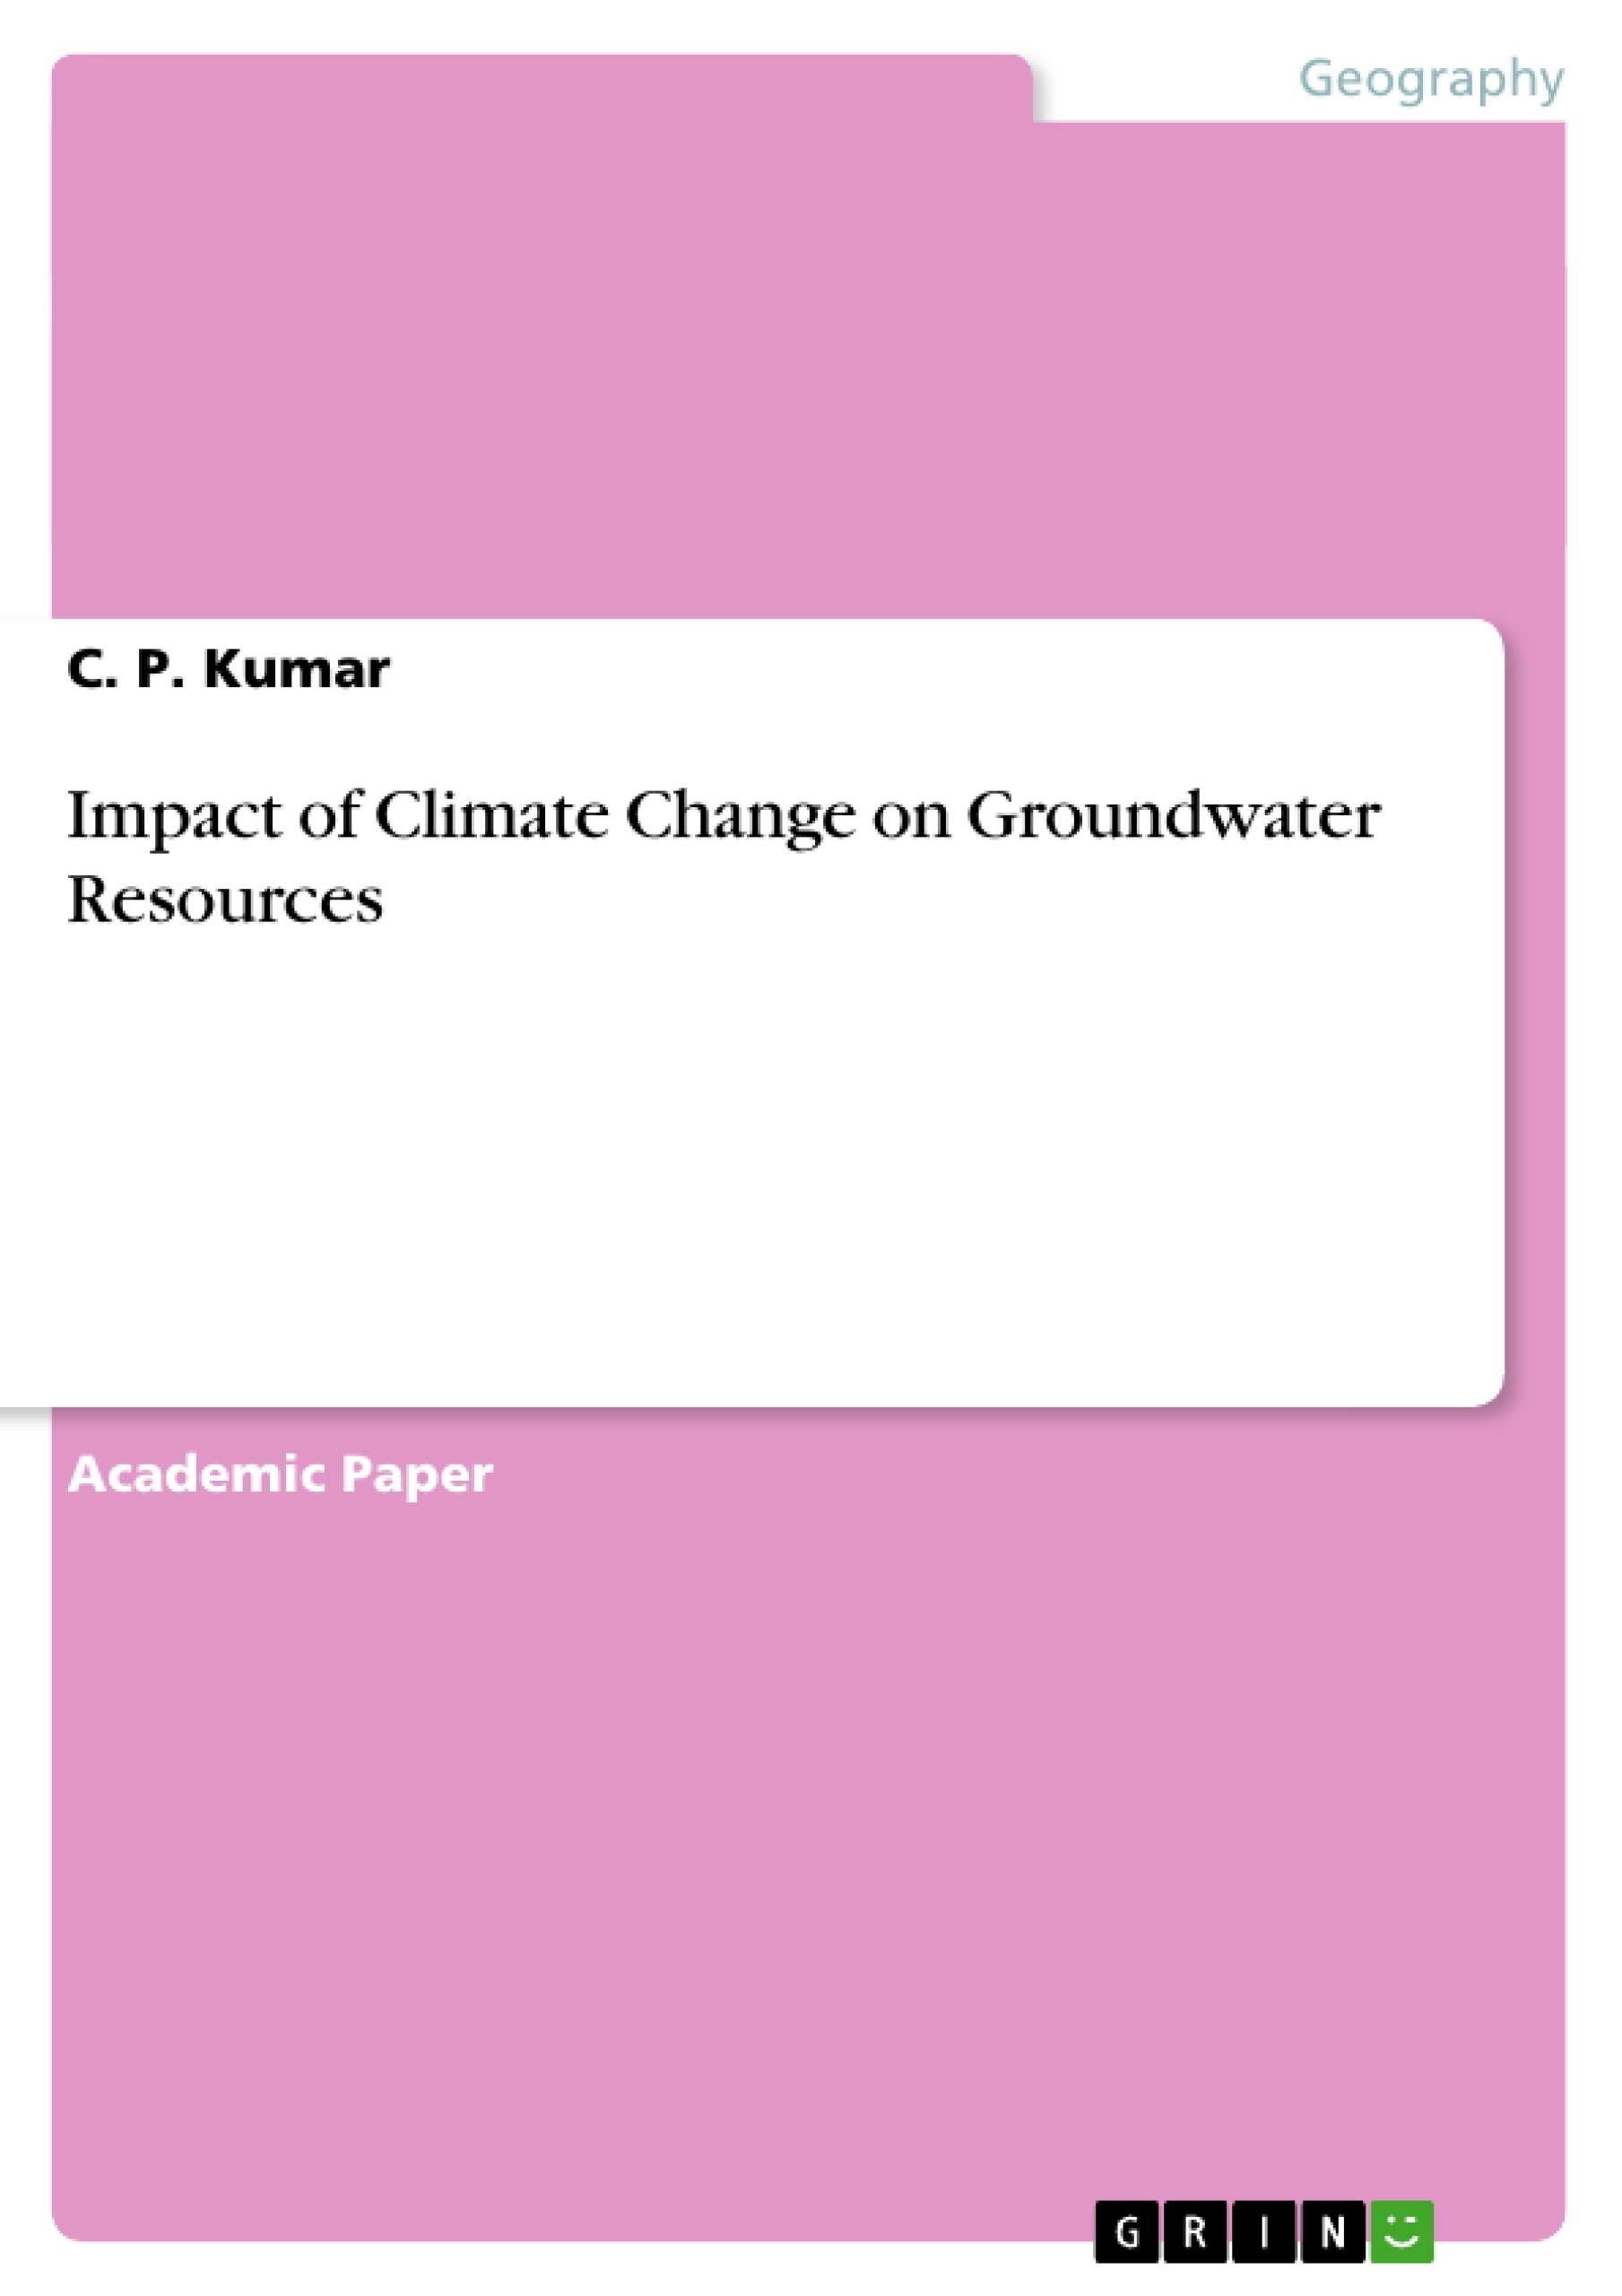 research papers natural disasters and the economy